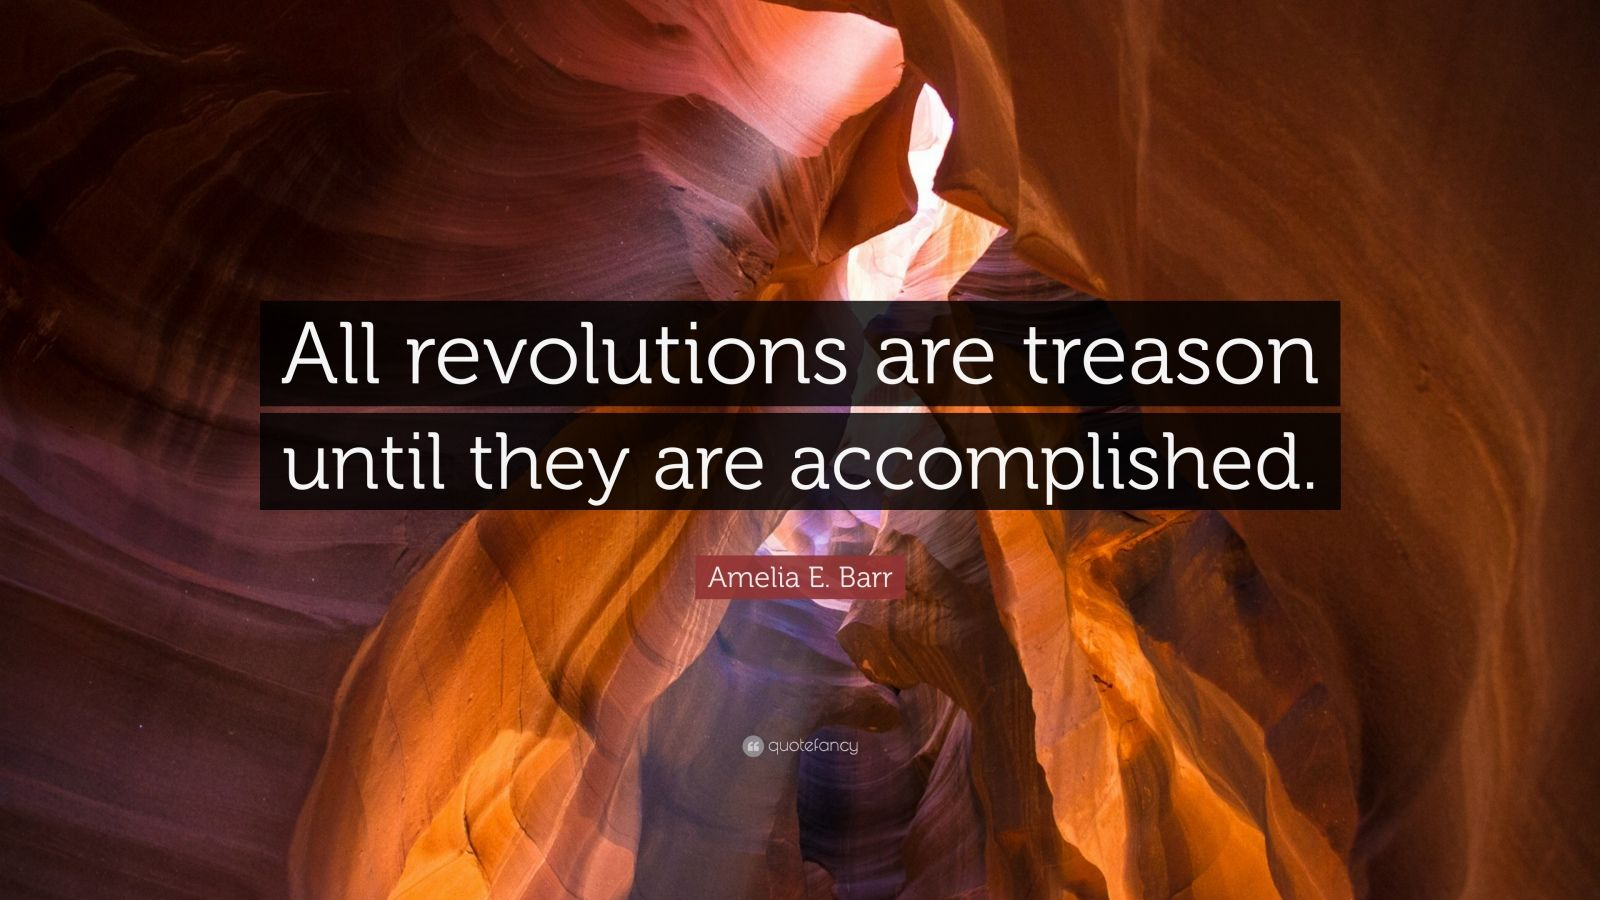 """Amelia E. Barr Quote: """"All revolutions are treason until they are accomplished."""""""